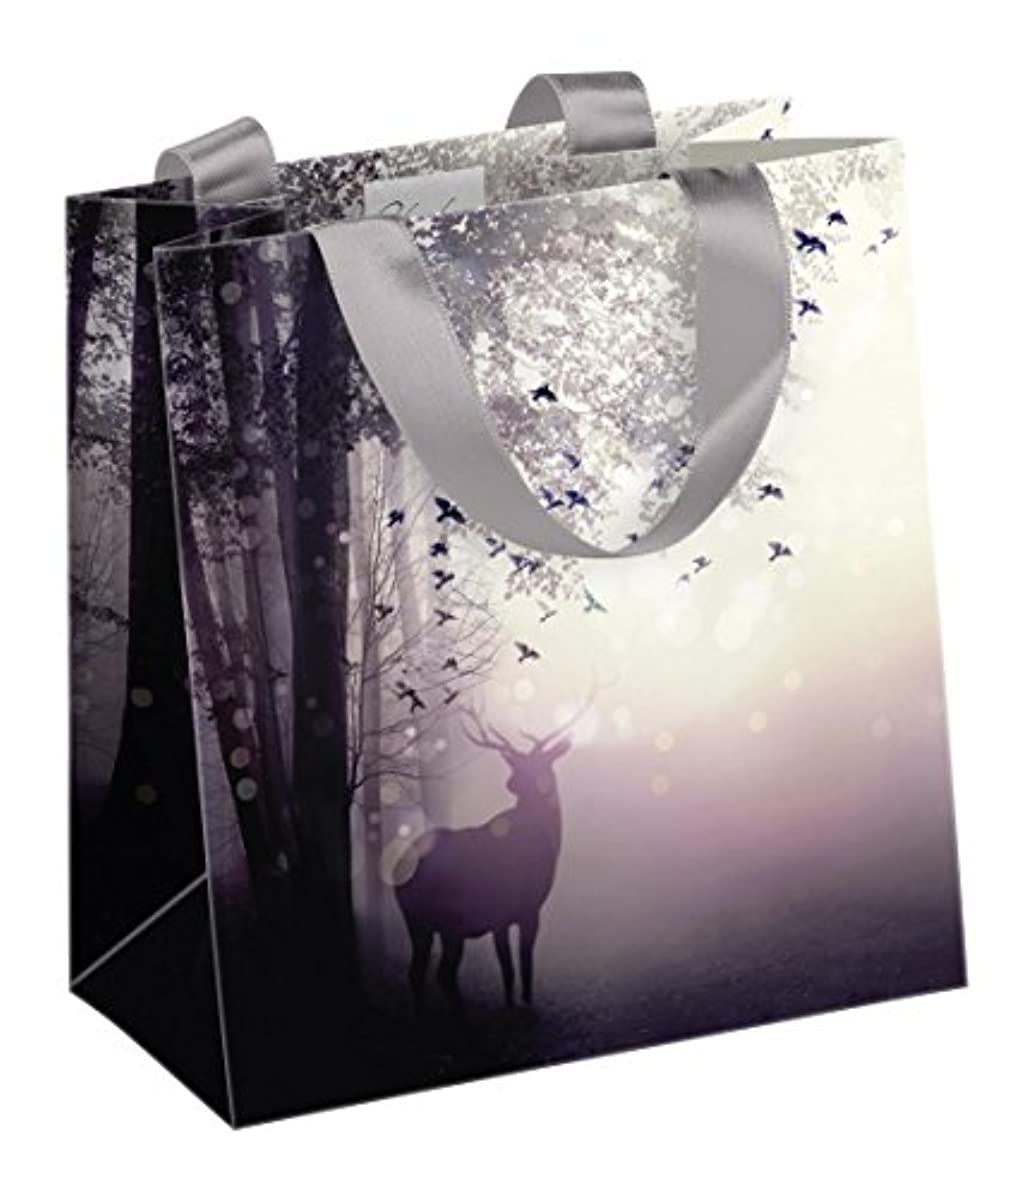 Clairefontaine 14 x 75 x 15 cm Chacha by Iris Small Gift Paper Bag